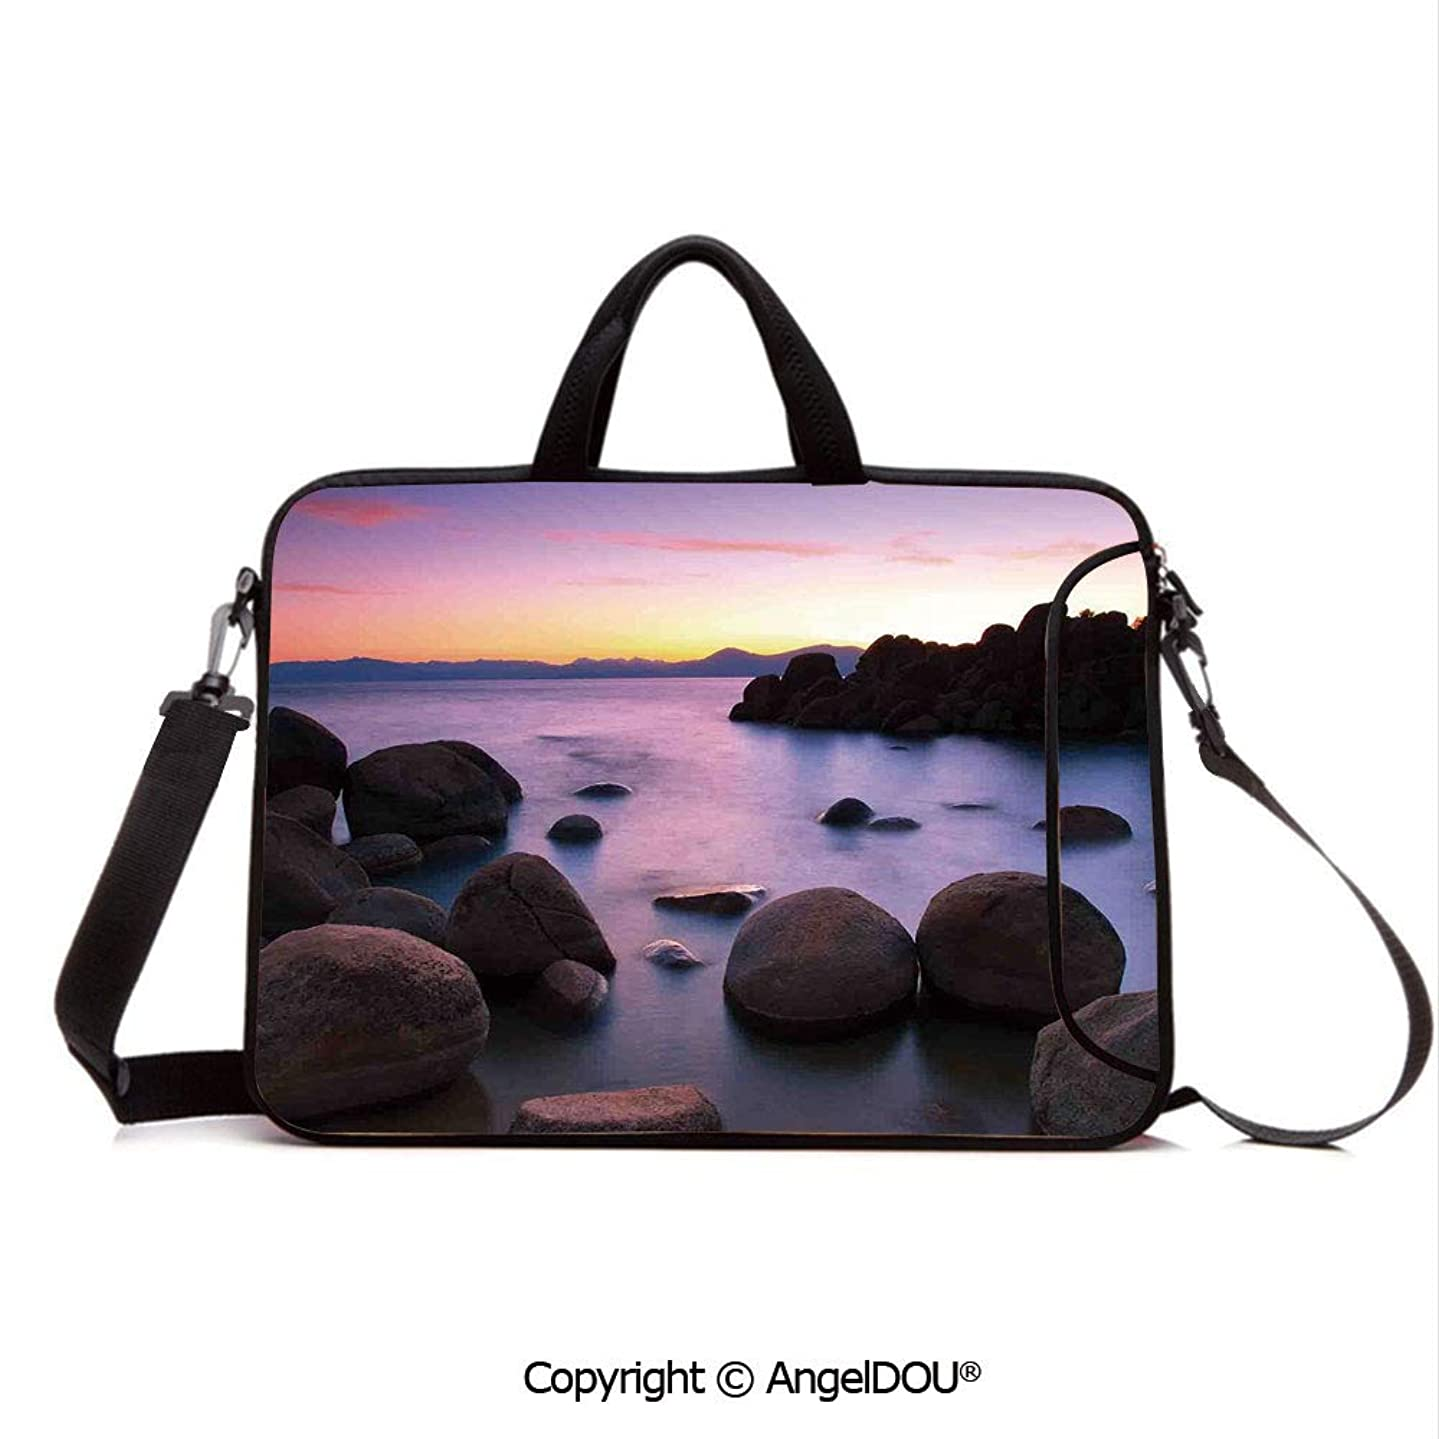 AngelDOU Neoprene Laptop Shoulder Bag Case Sleeve with Handle and Extra Pocket Long Exposure Still Lake with Big Rocks in Blurred Water and Misty Color Sky Sce Compatible with MacBook/Ultrabook/HP/A